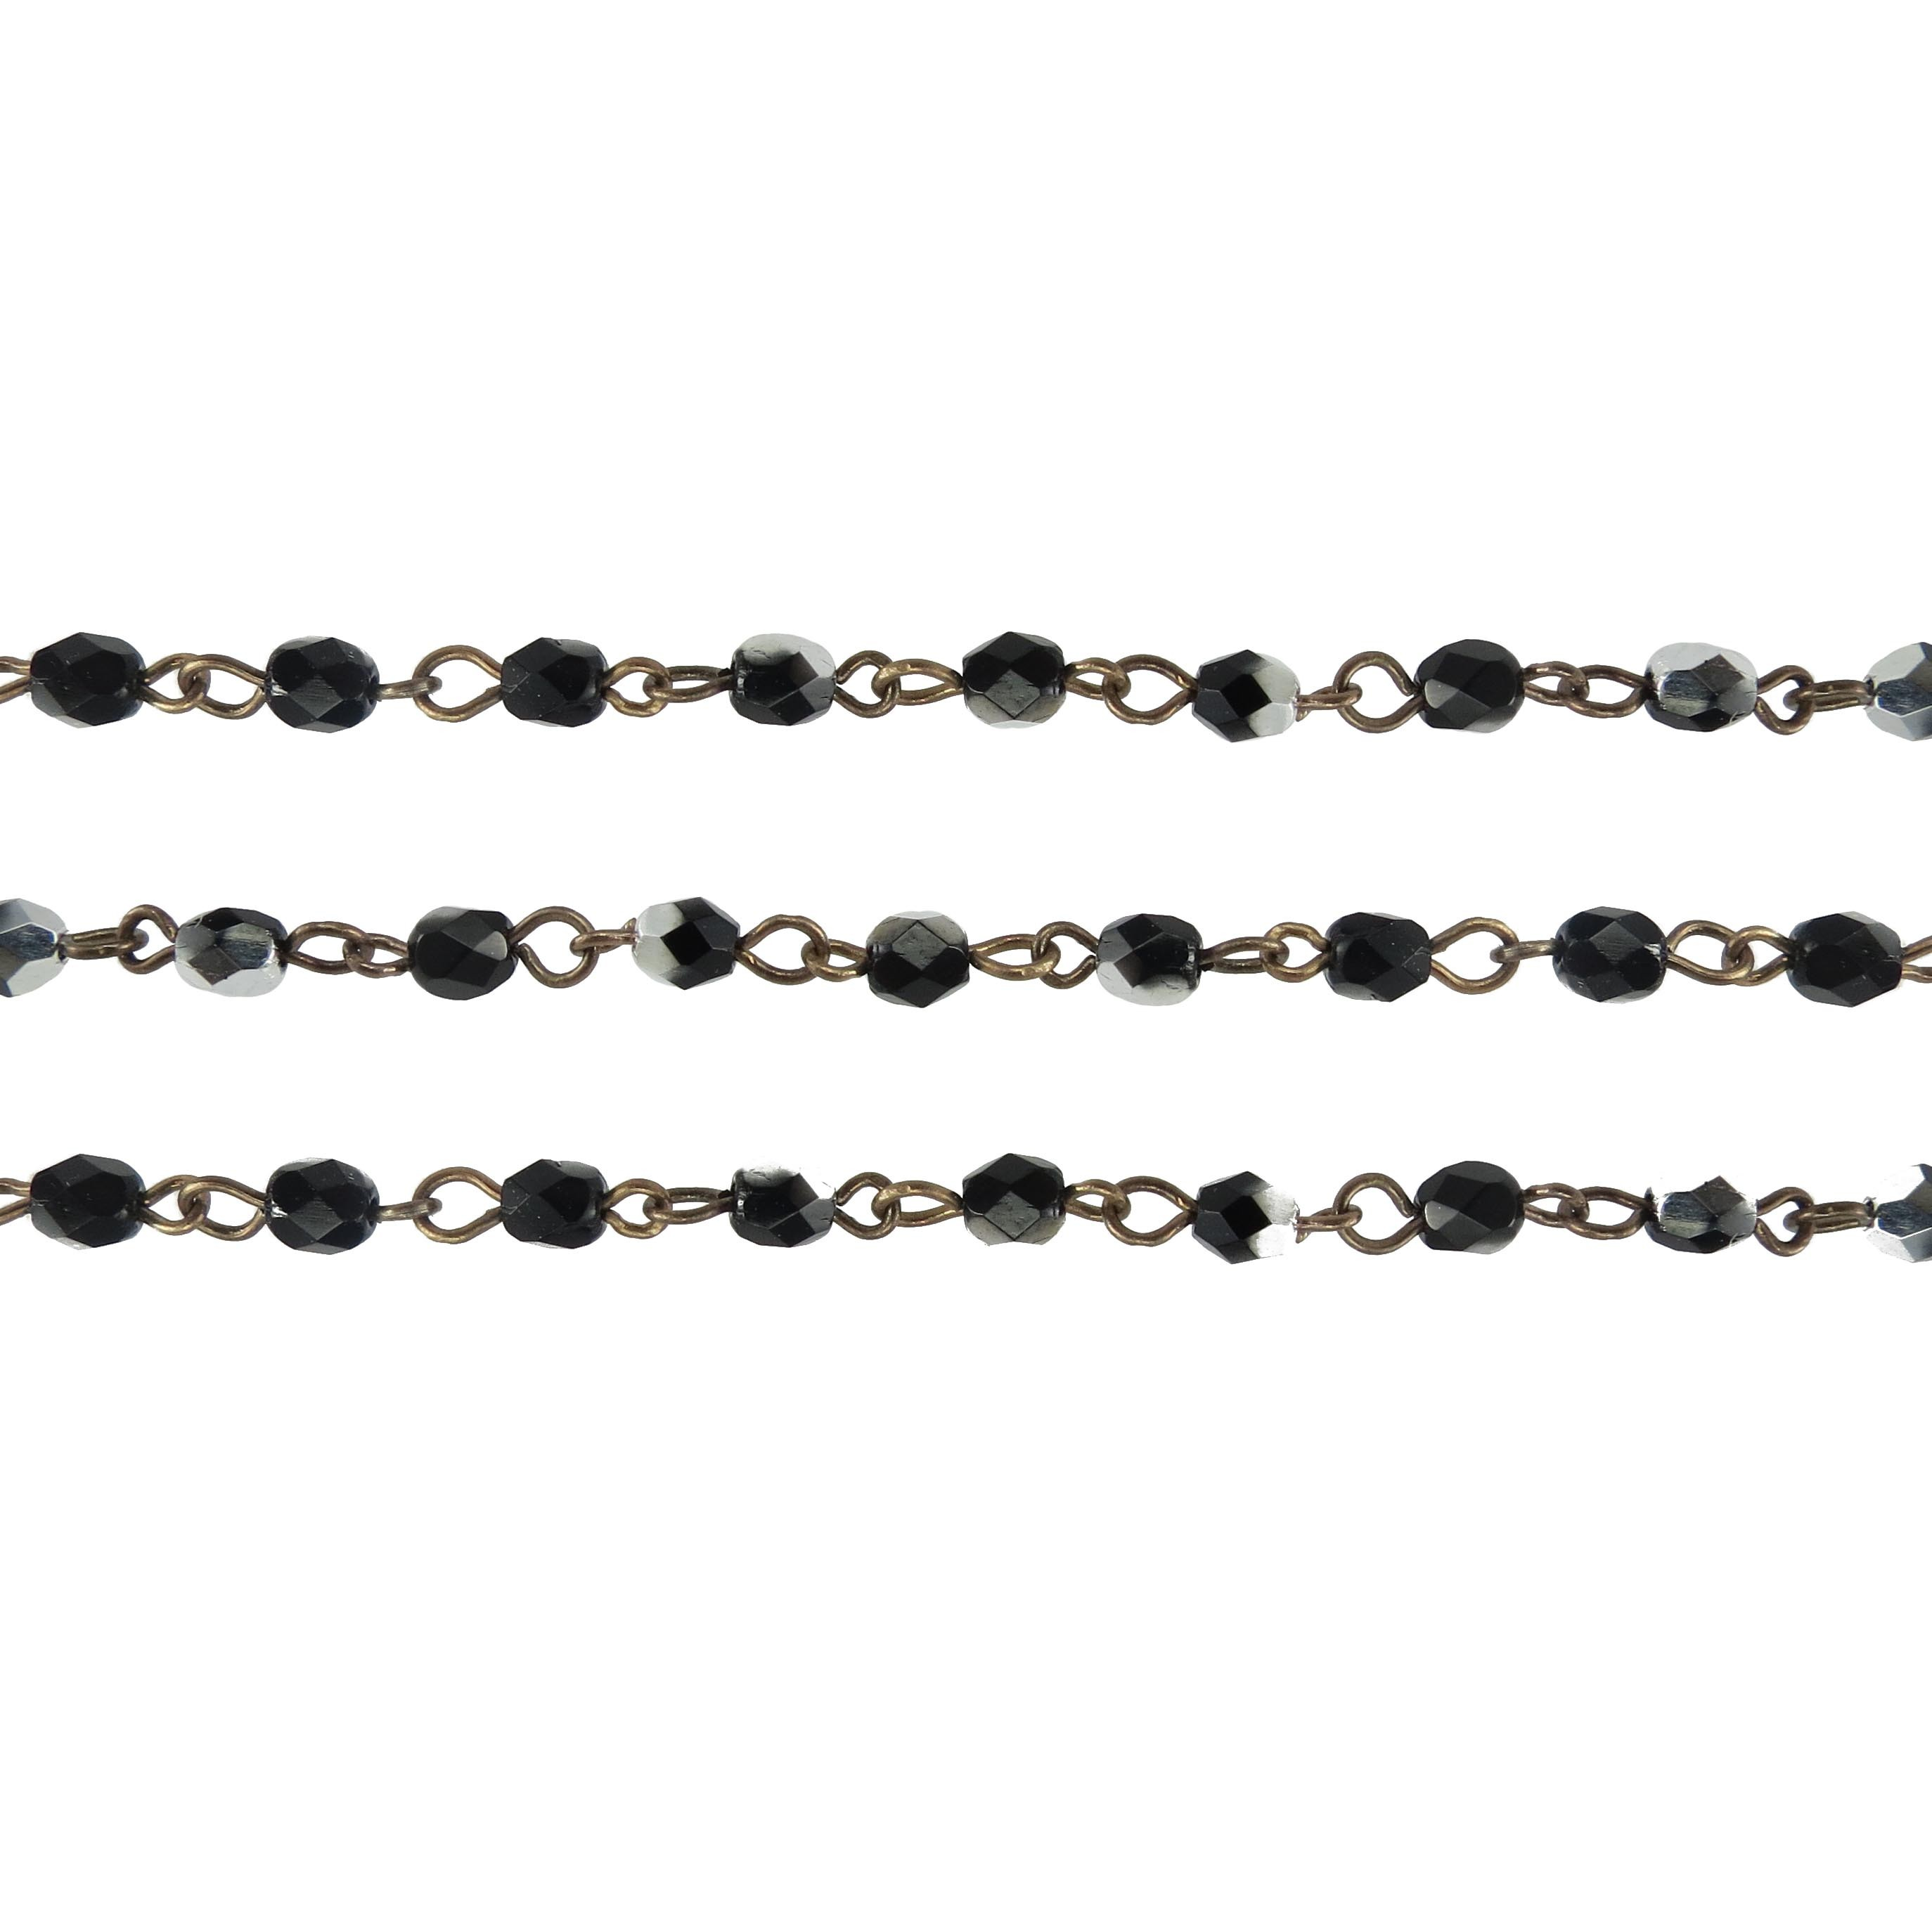 Czech Linked Rosary Chain, 4mm Jet Silver Faceted Beads, Brass Linked Chain, (Sold by the Meter)